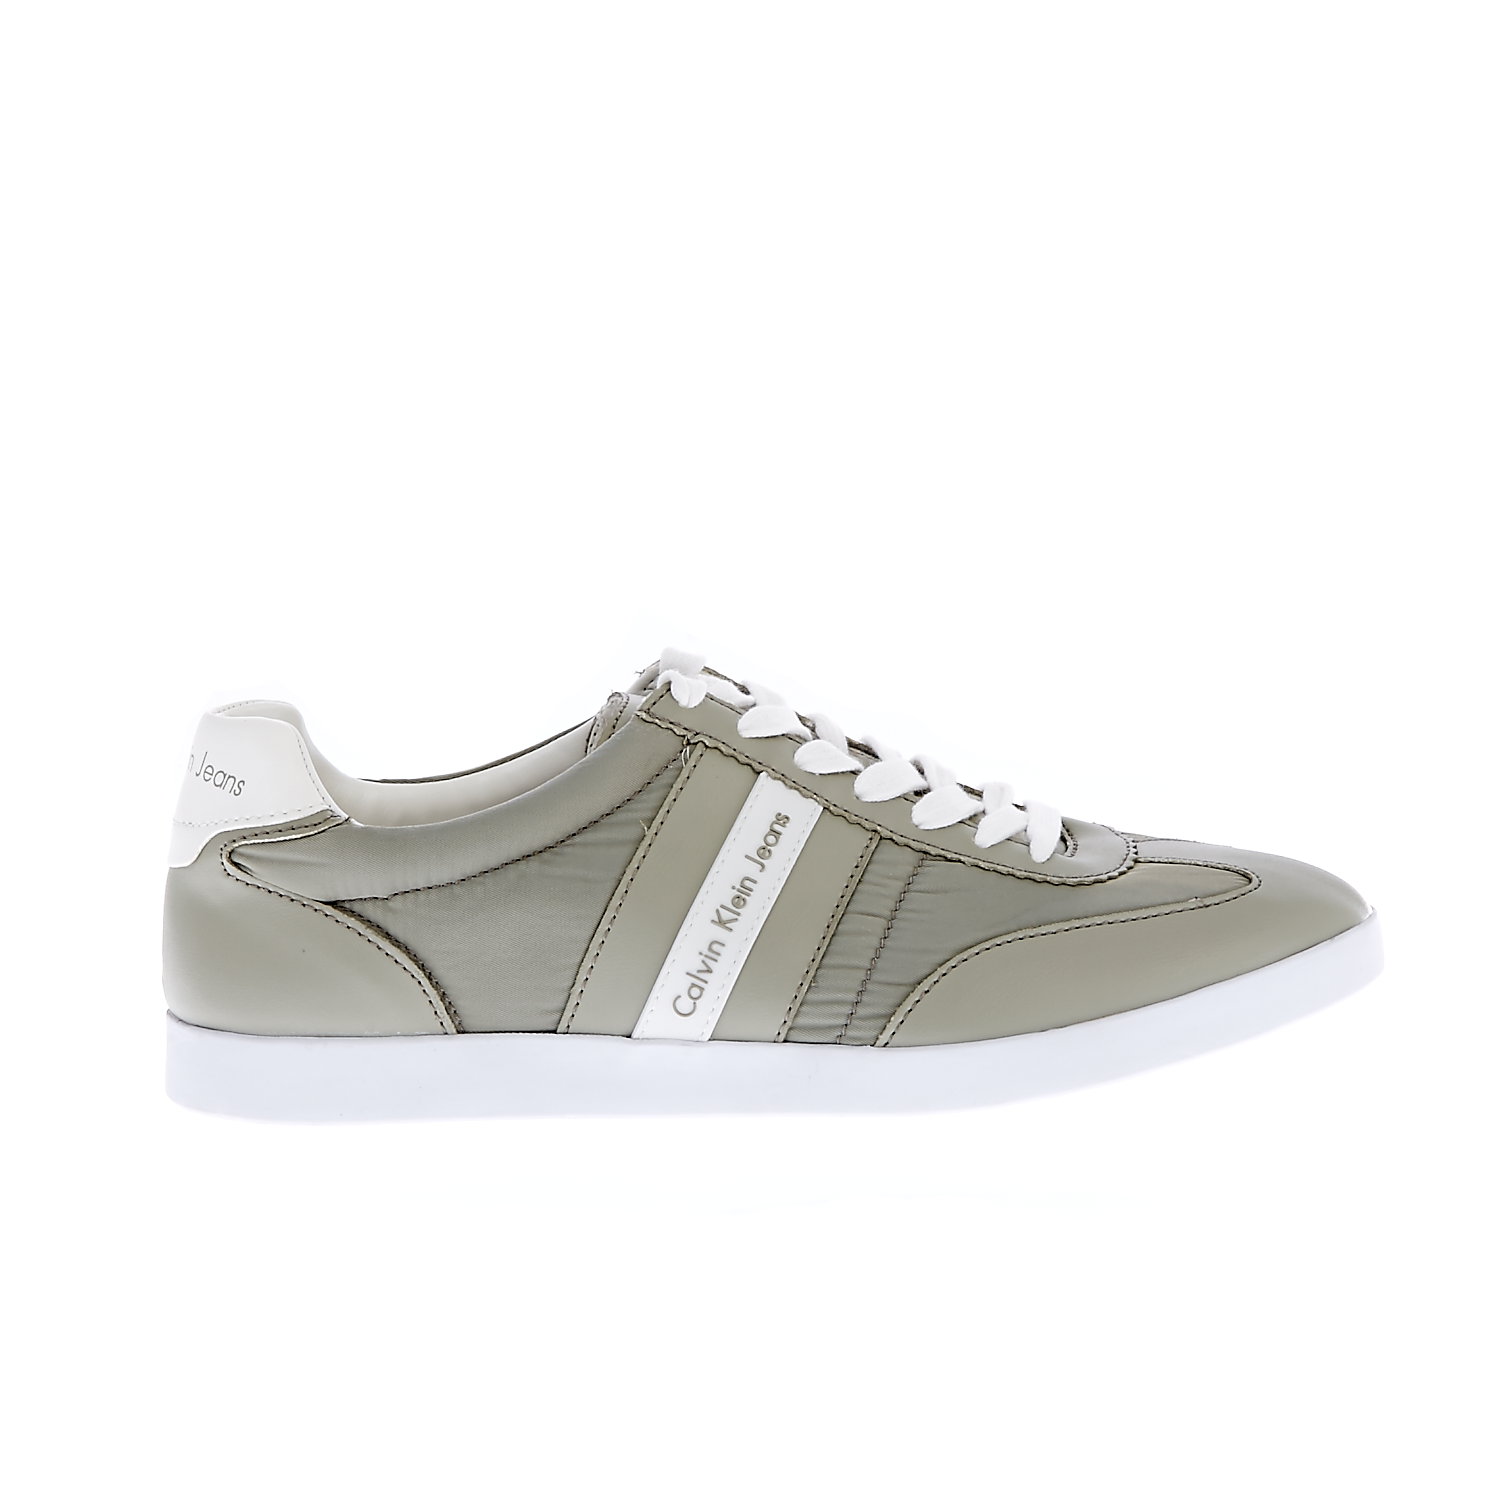 CALVIN KLEIN JEANS – Ανδρικά sneakers CALVIN KLEIN JEANS ACE μπλε